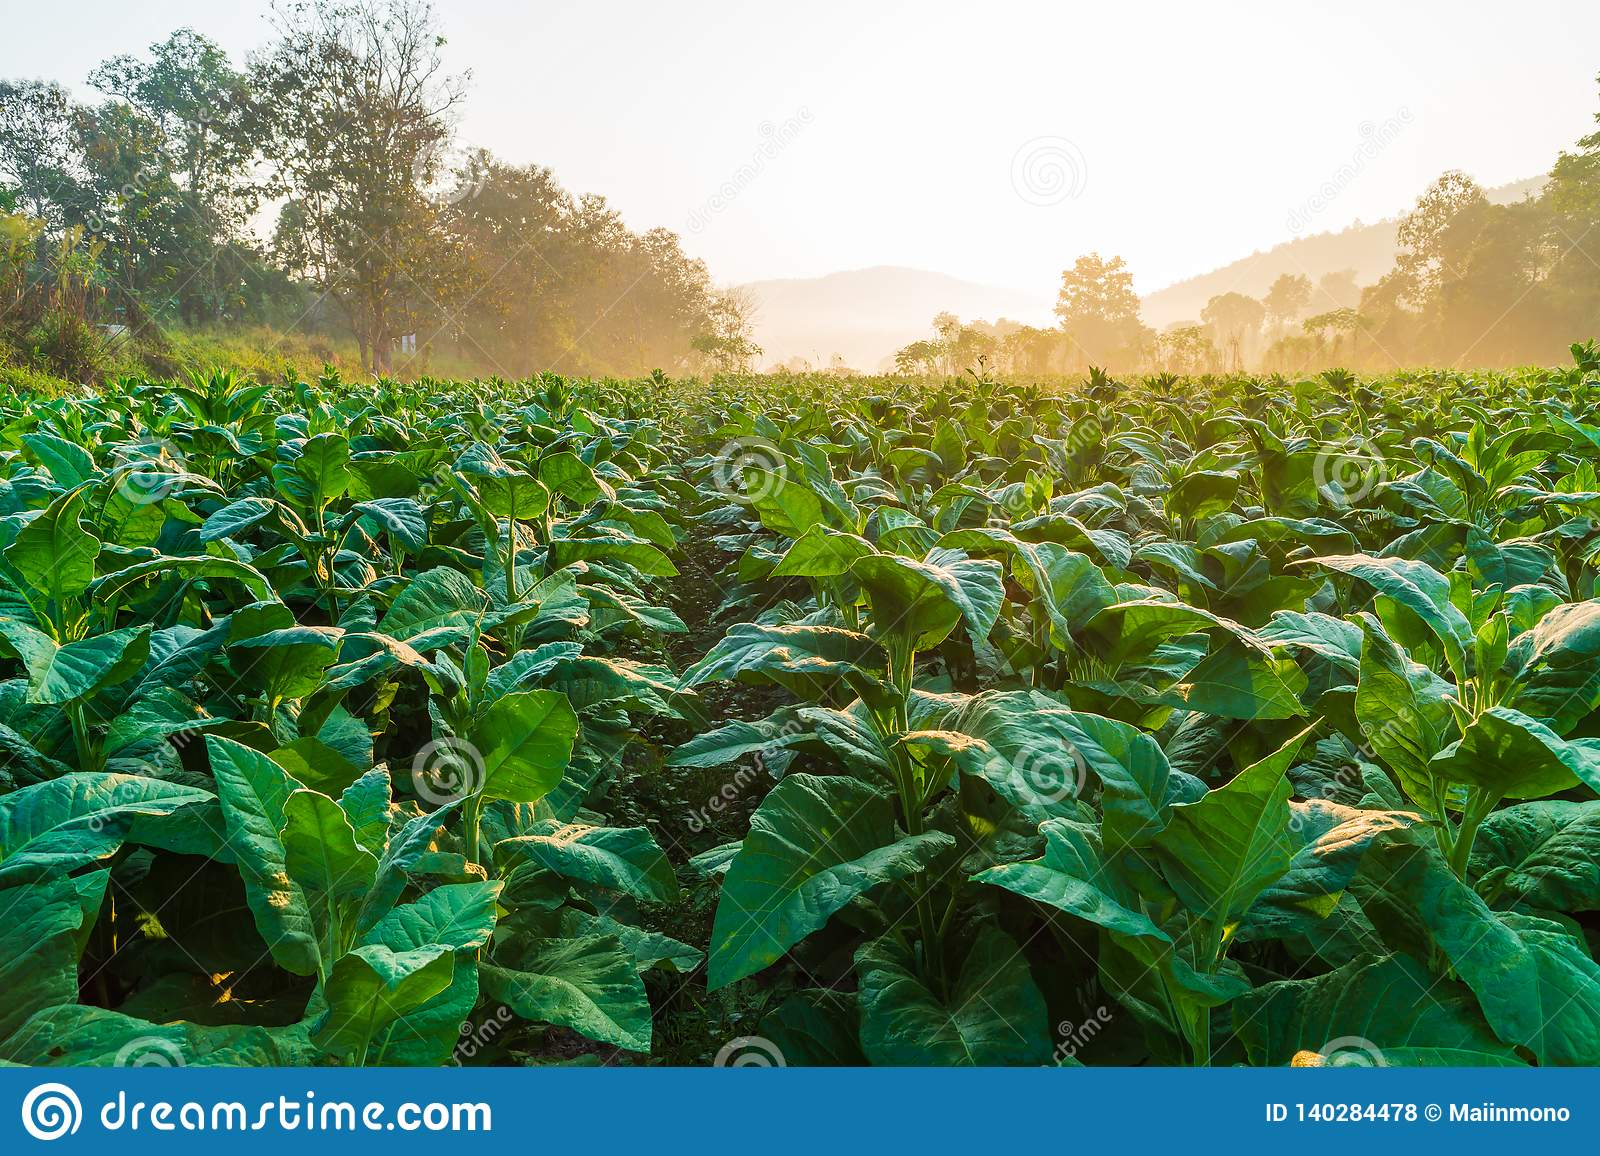 The plantation of tobacco trees under the morning sun.